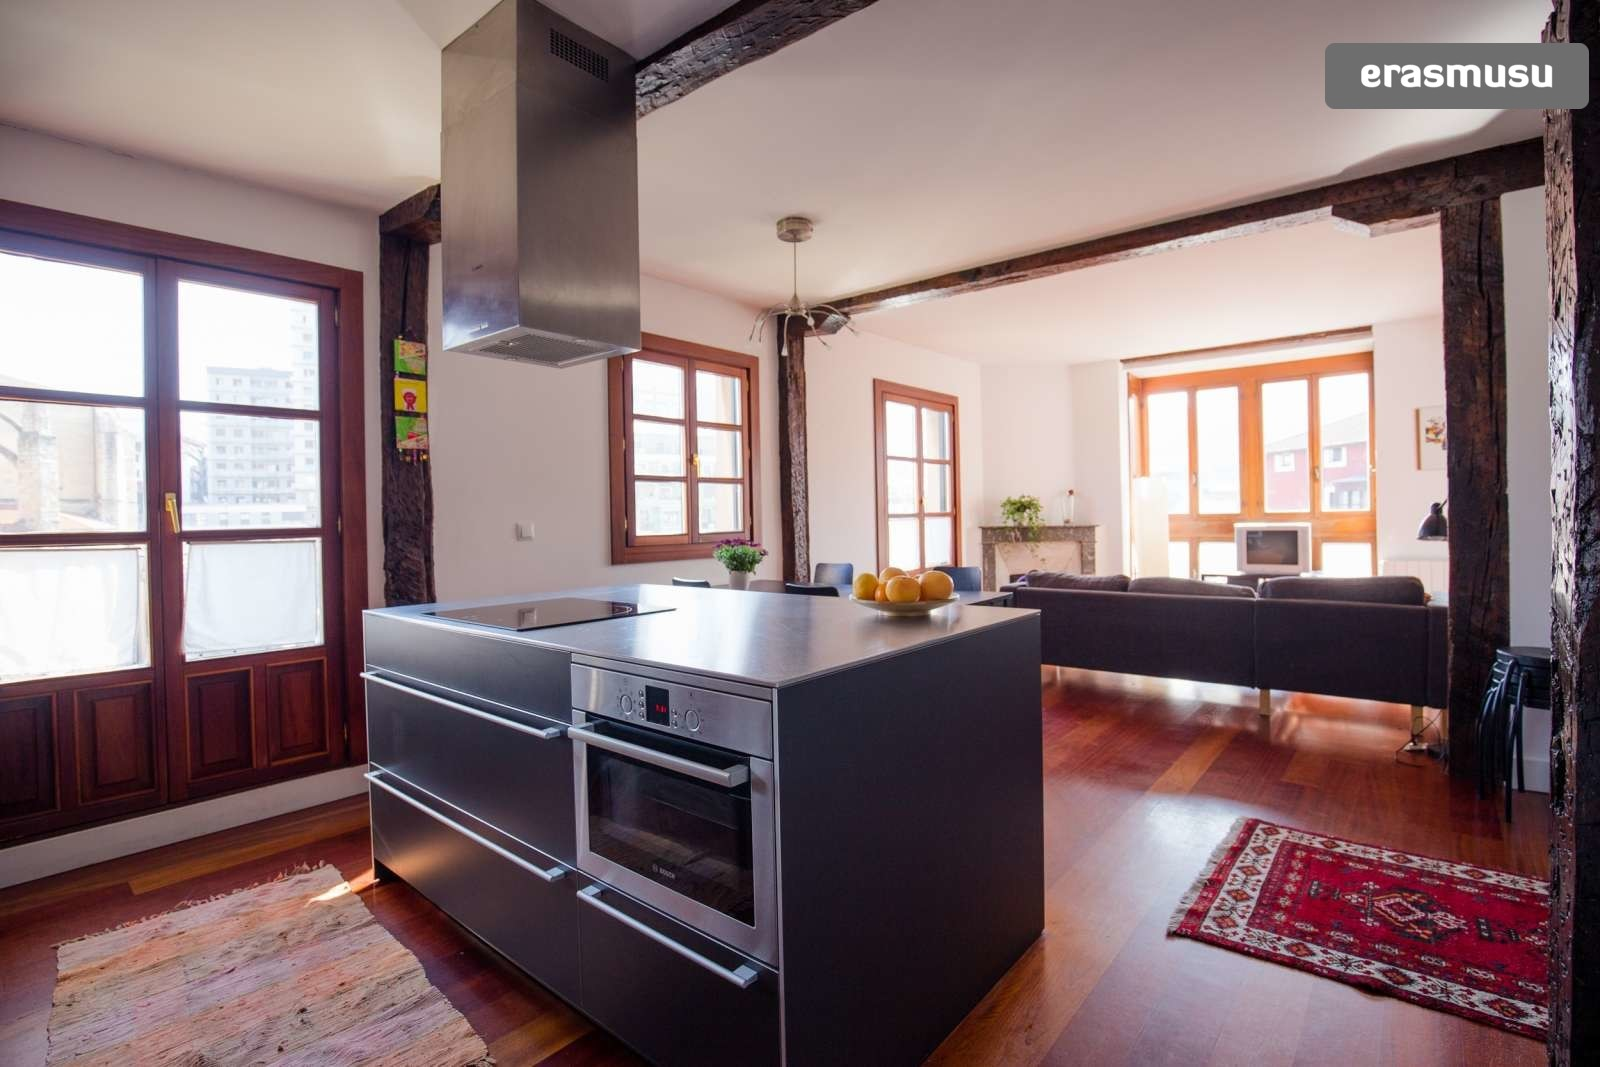 Spectacular 2 Bedroom Apartment With Balcony For Rent In Bilbao La